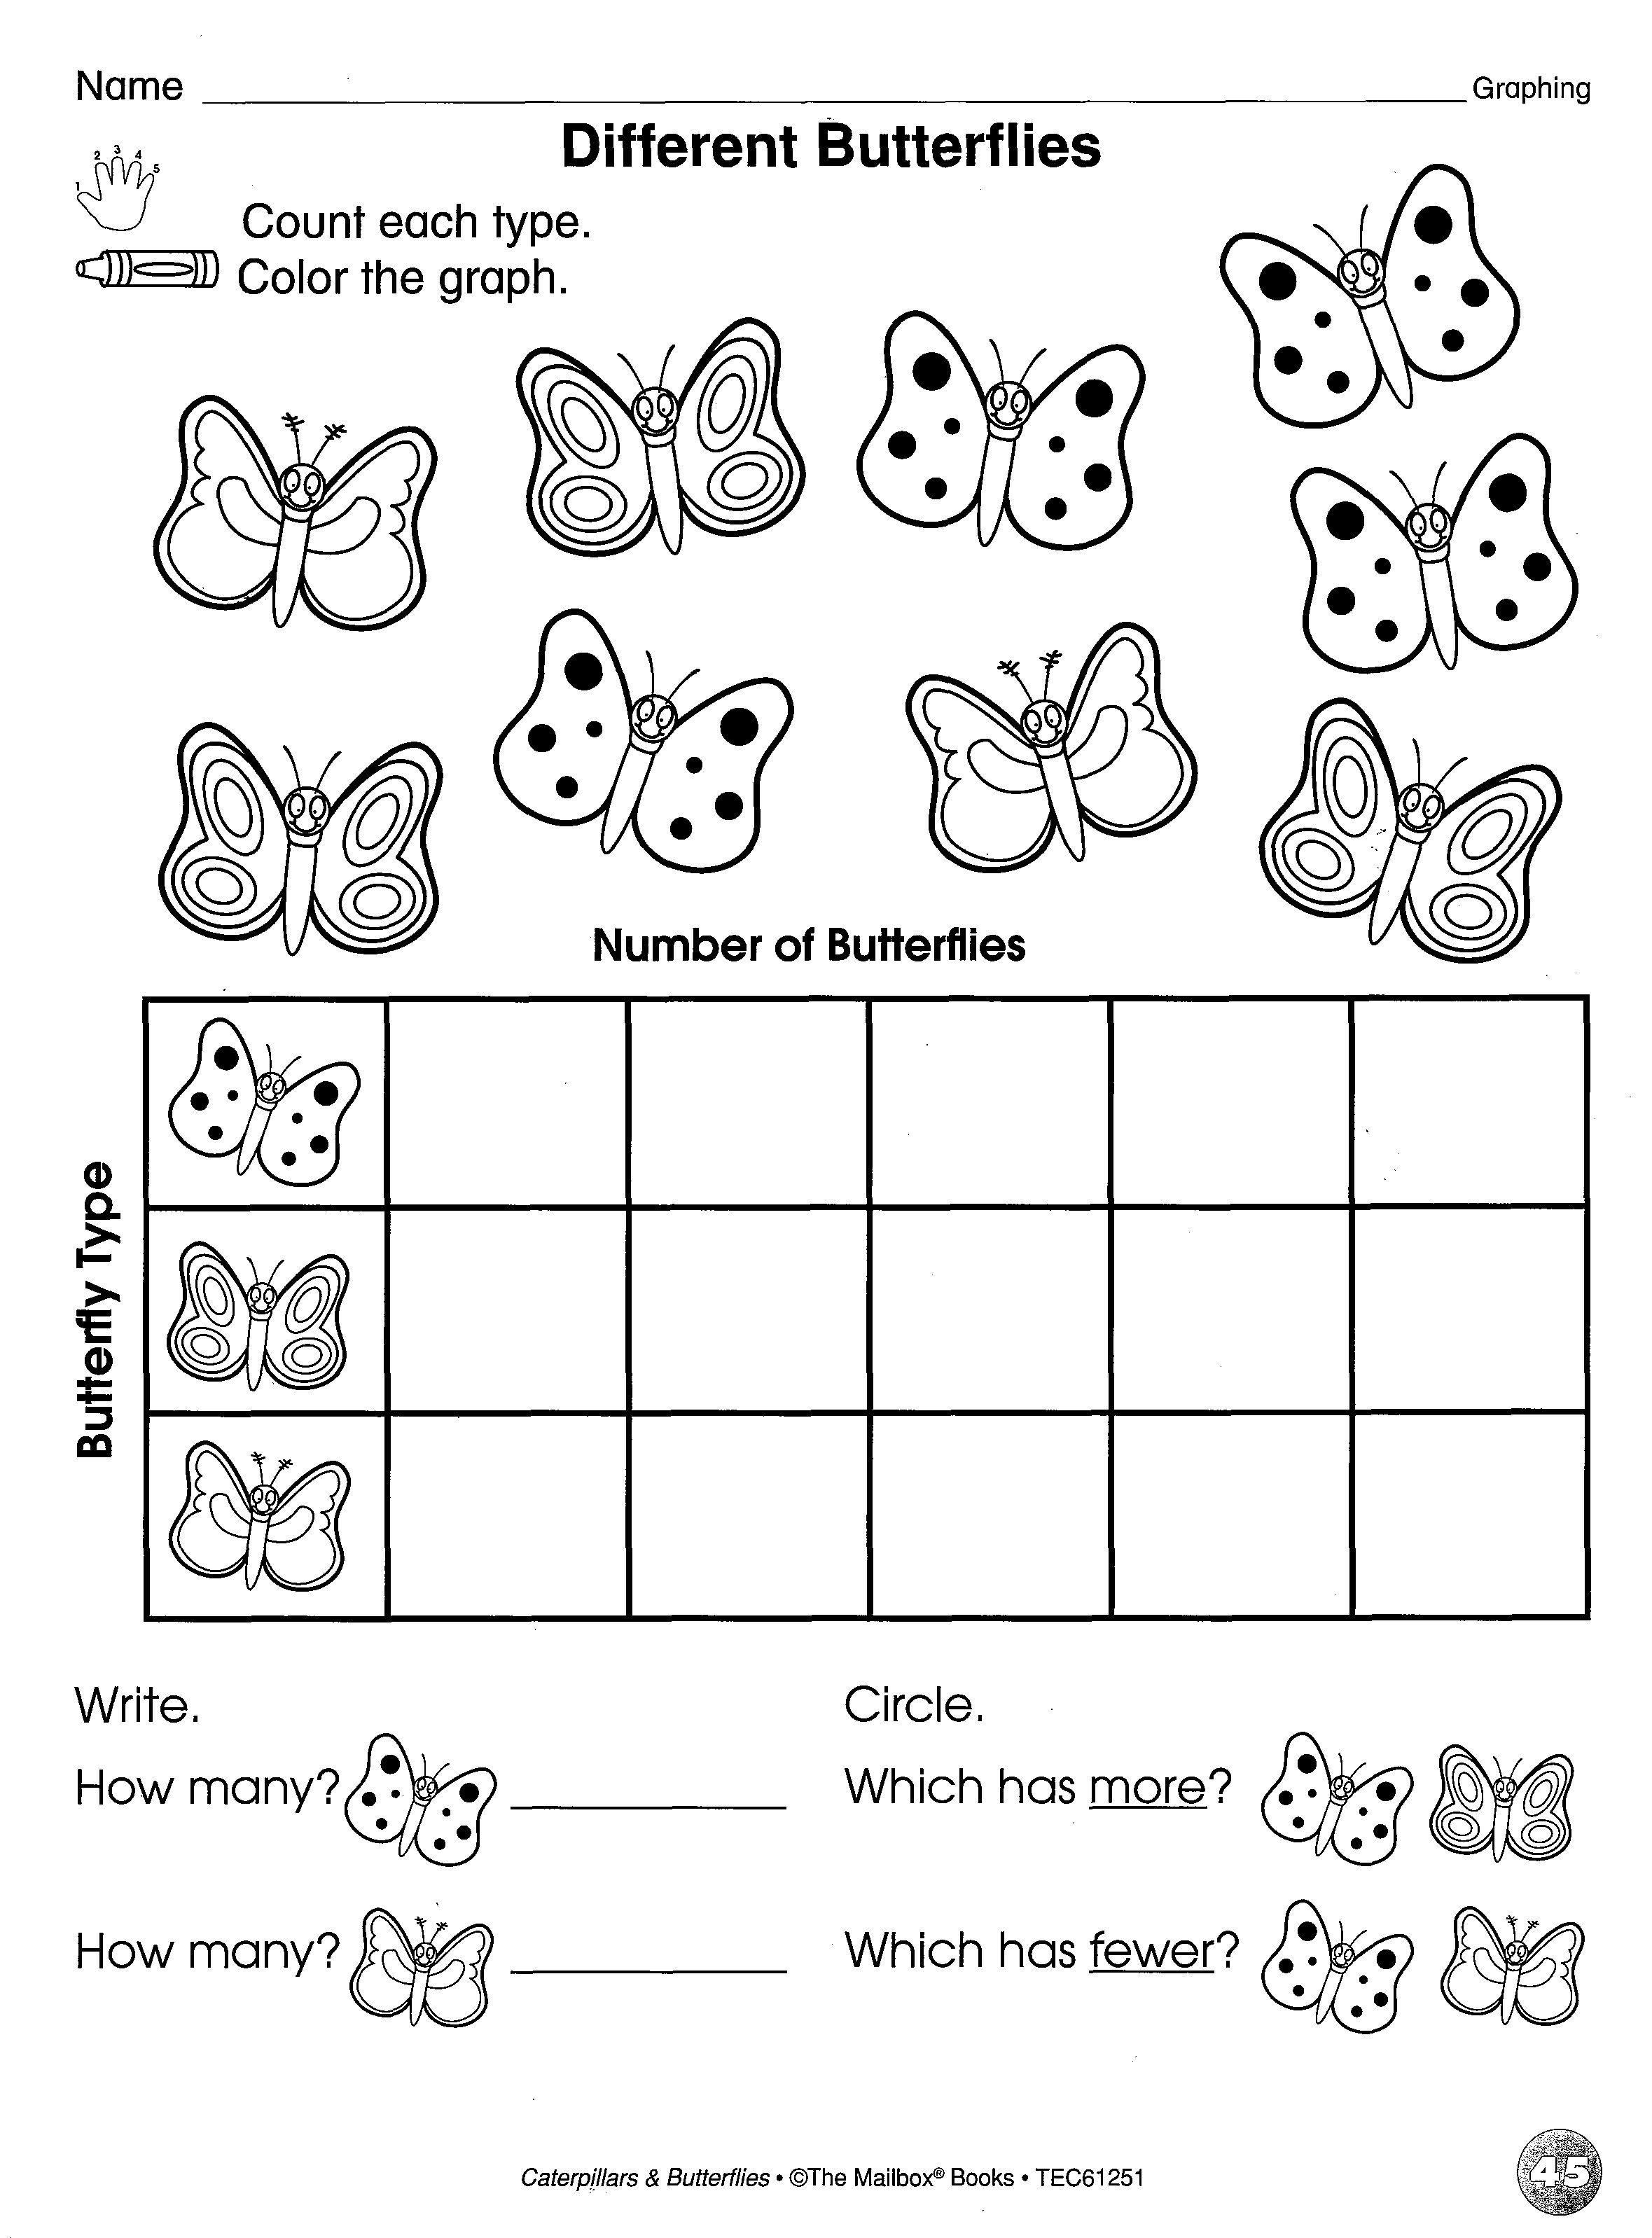 Predownload: Butterfly Reproducible Page That Reinforces Counting Graphing Skills Taken From Caterpillars Butterfly Lessons Butterflies Classroom Insects Kindergarten [ 3196 x 2359 Pixel ]